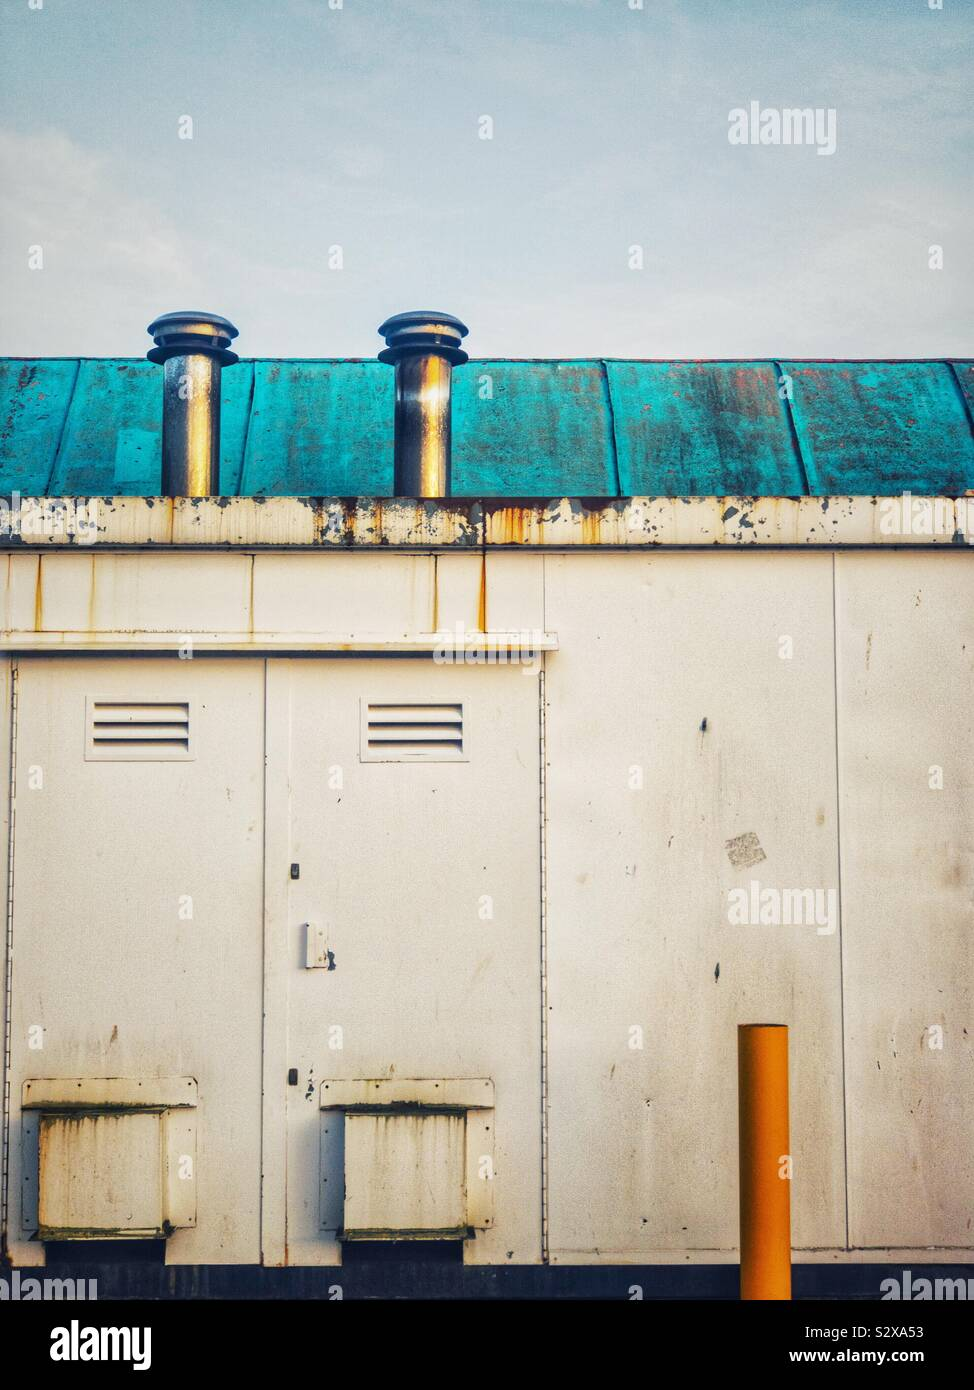 Industrial equipment on side of building. Foto Stock